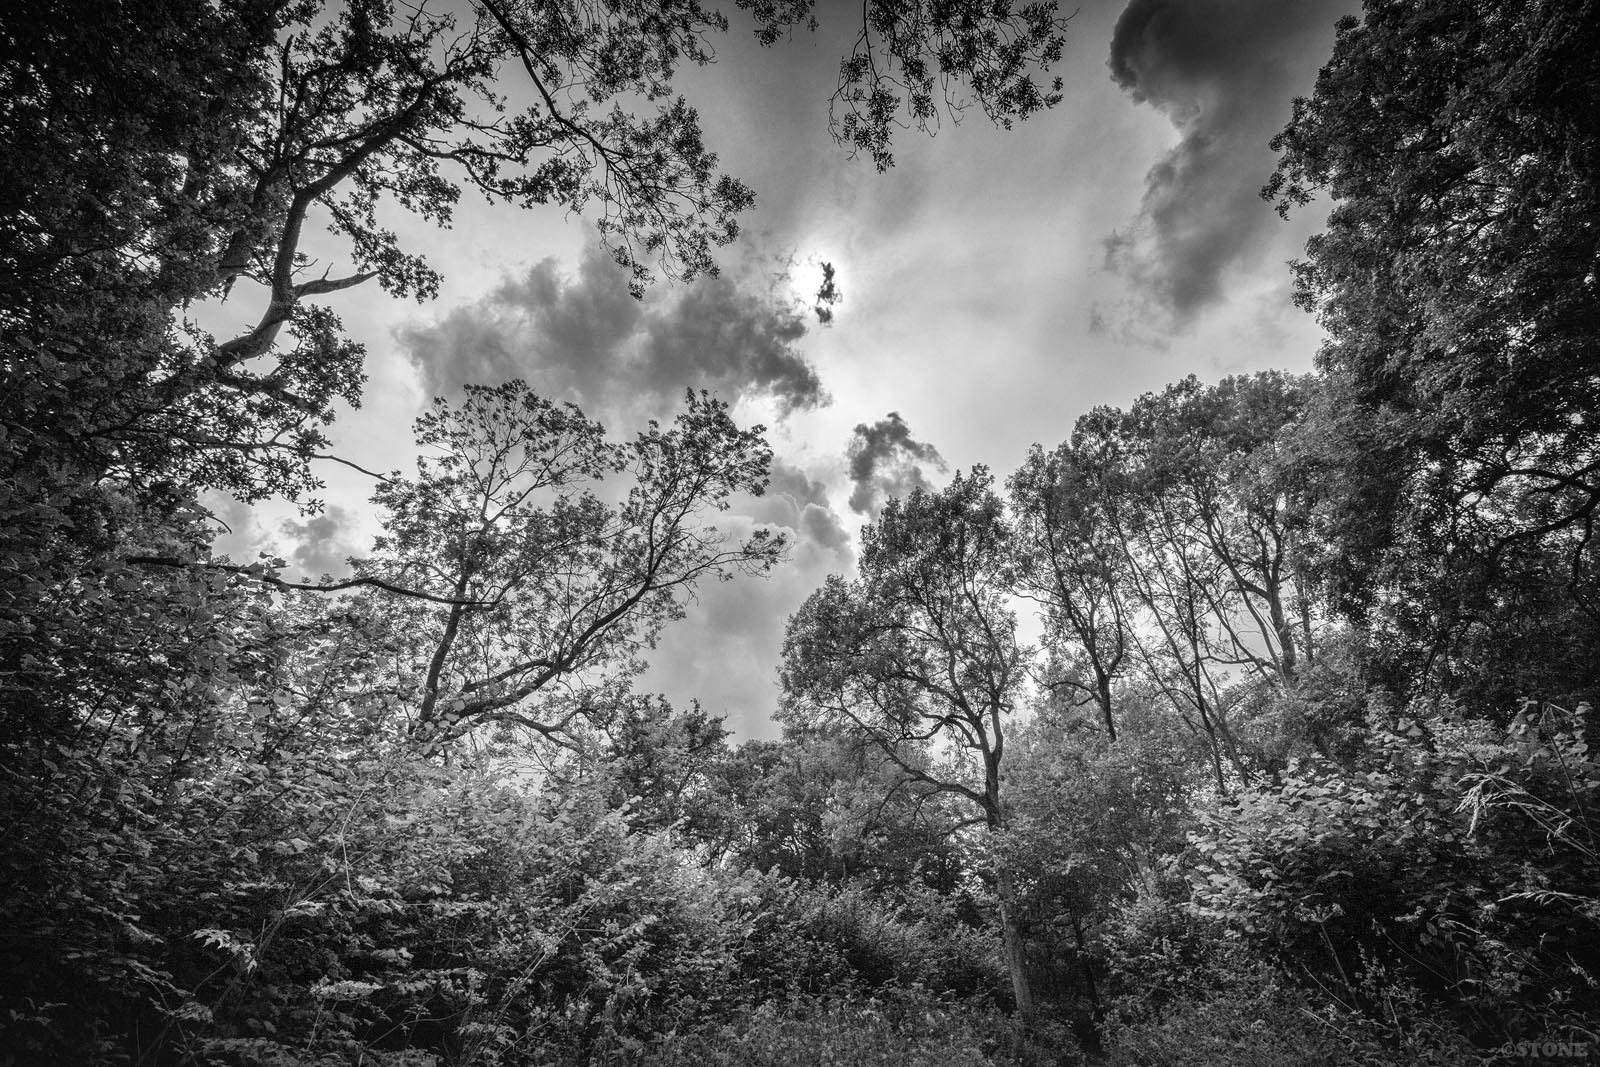 Lost in a Landscape: Wayland Wood